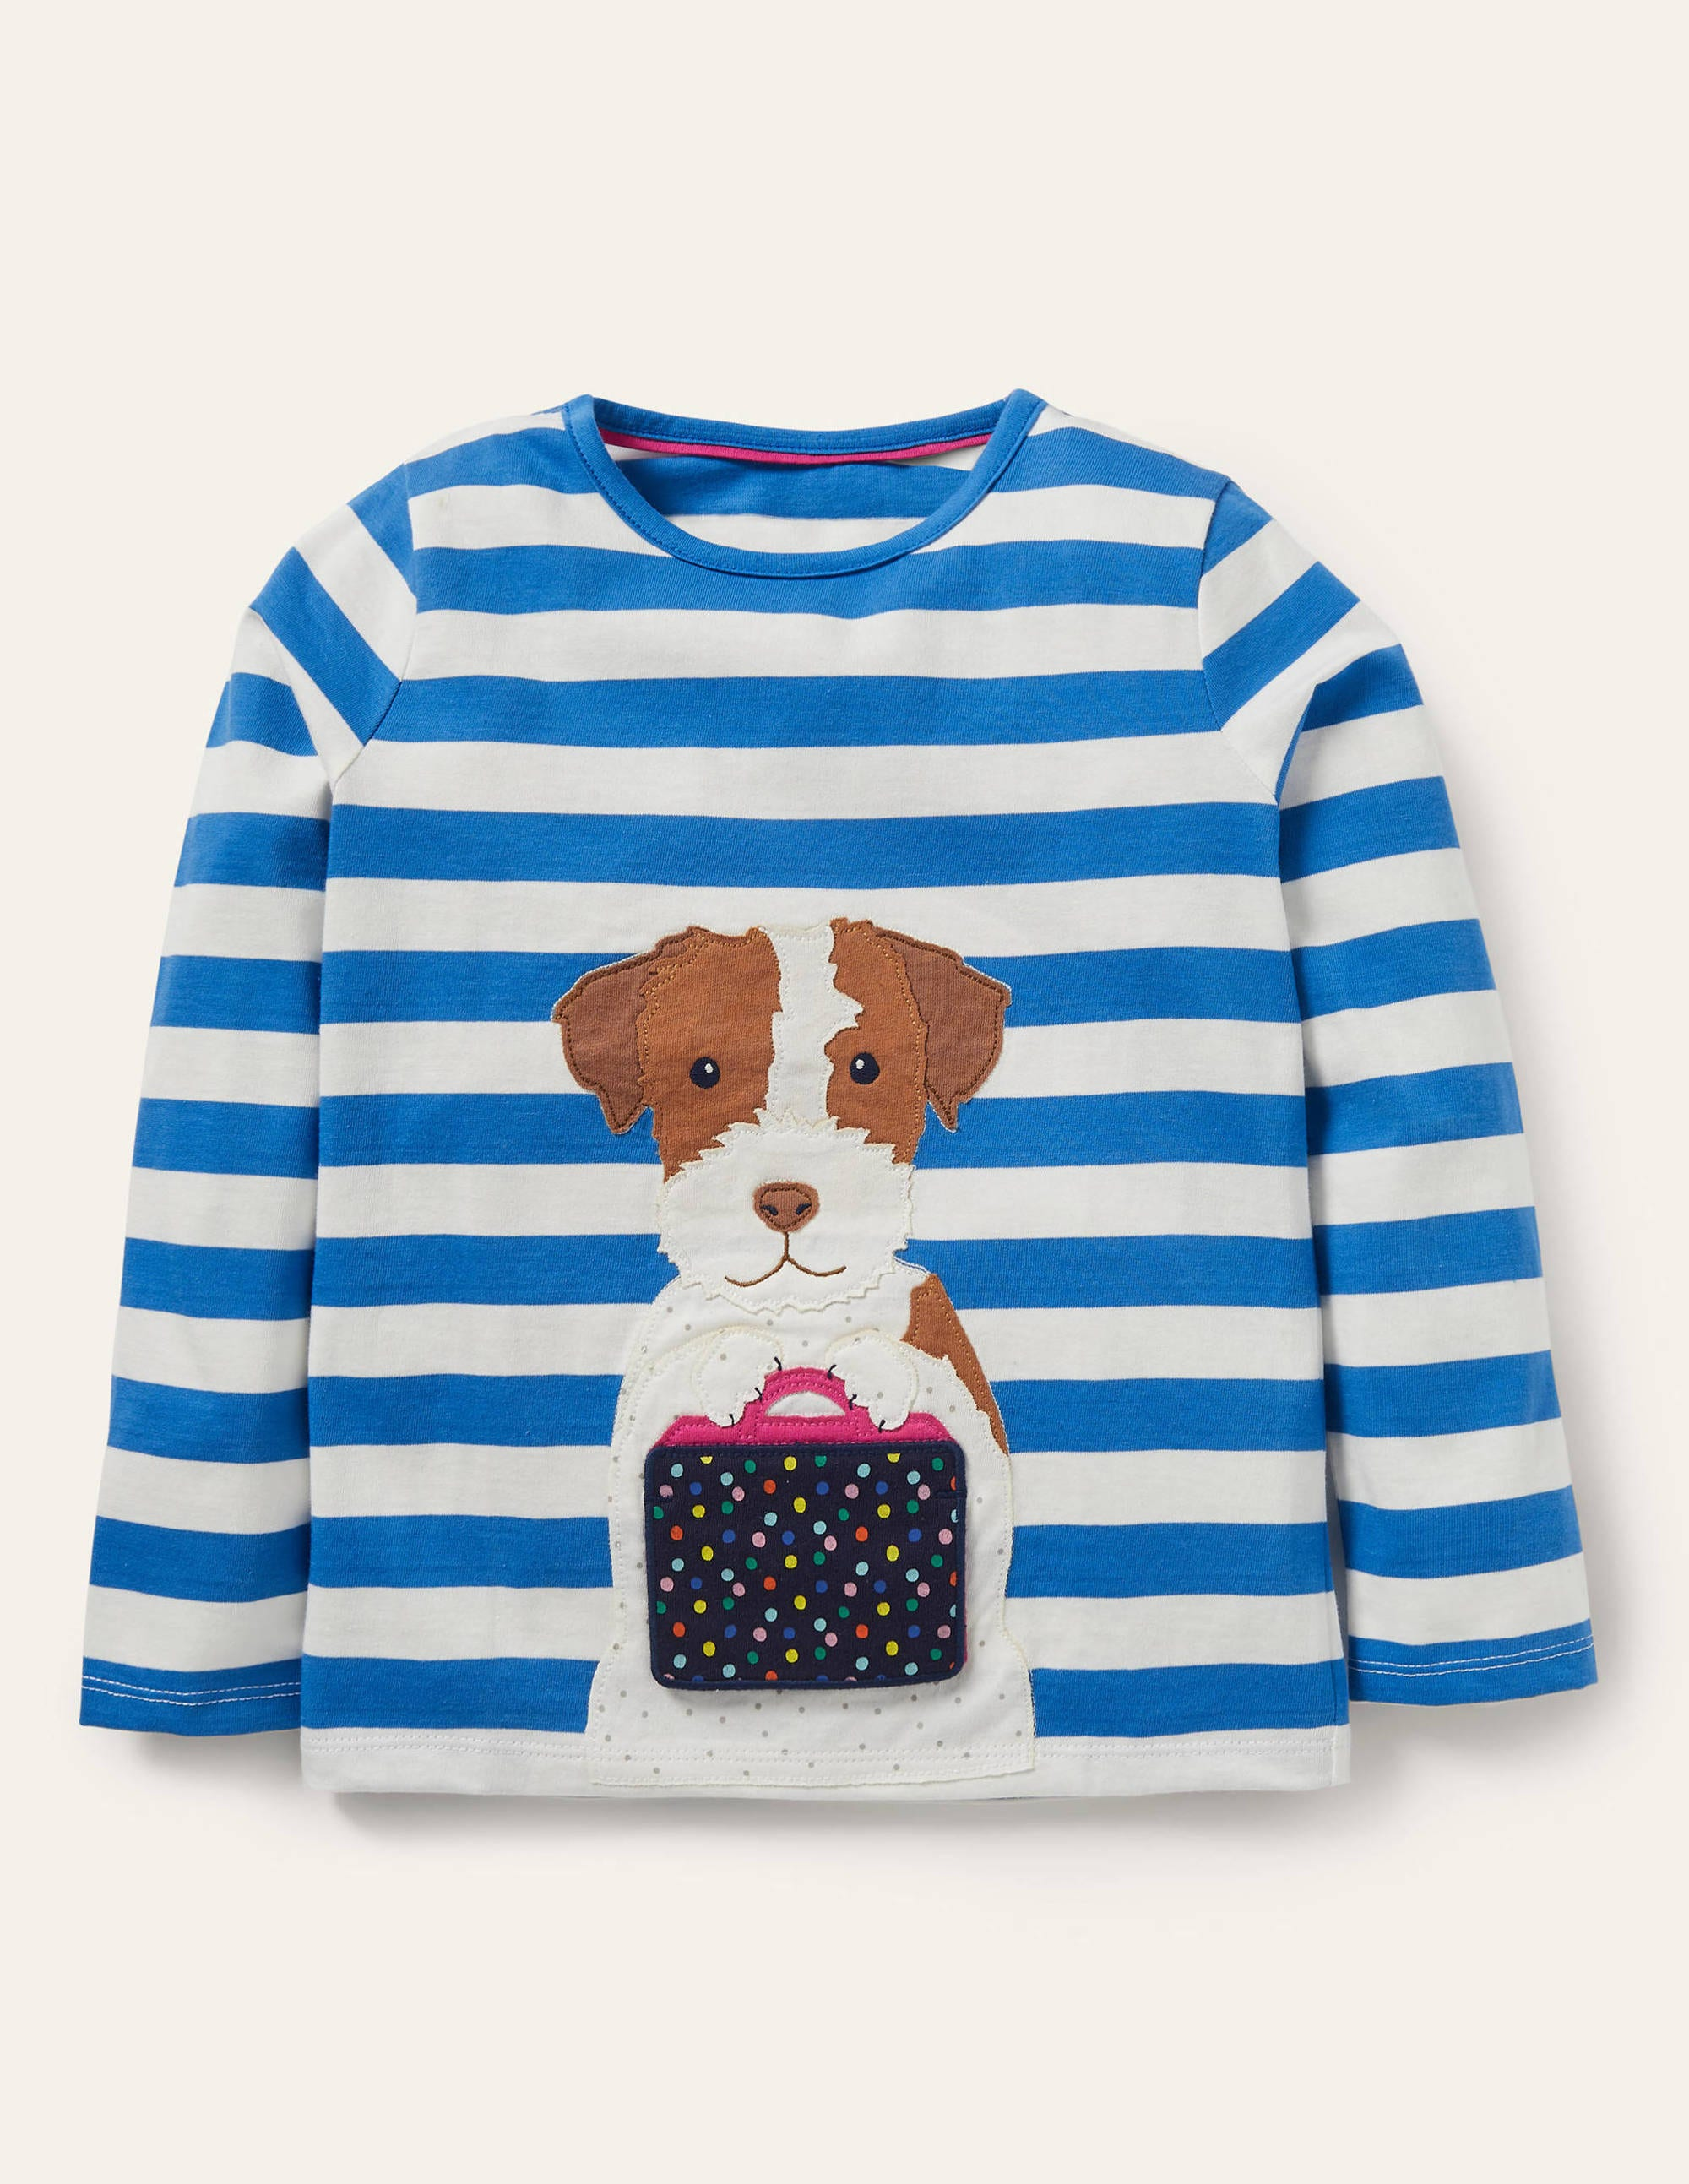 Boden Lift-the-flap T-shirt - Ivory/ Moroccan Blue Sprout